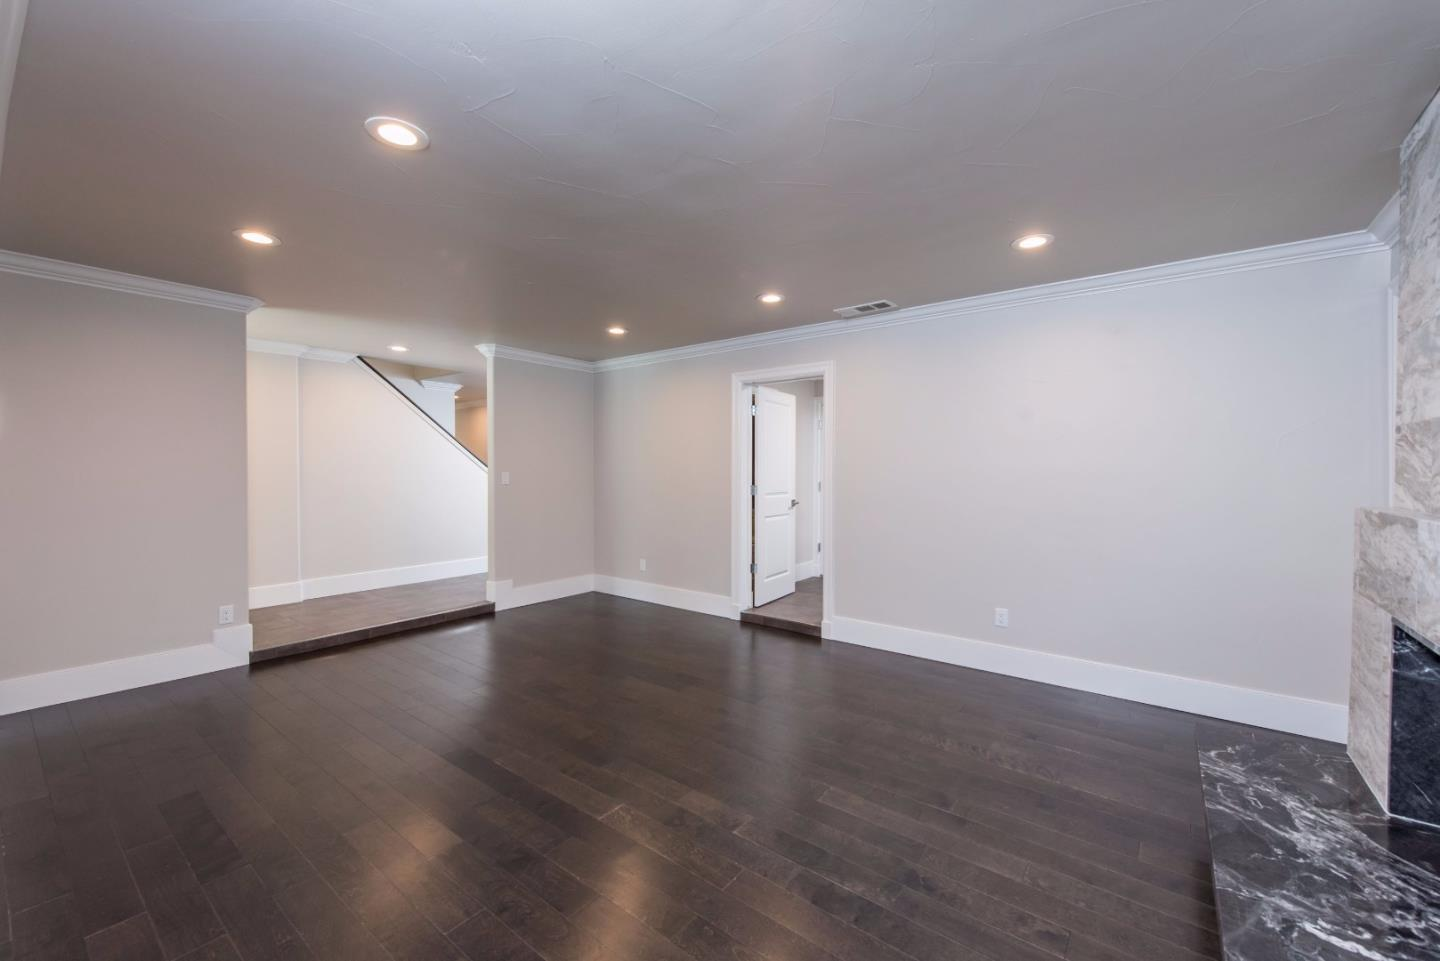 Additional photo for property listing at 7404 N Lead Avenue 7404 N Lead Avenue Fresno, Kalifornien 93711 Vereinigte Staaten